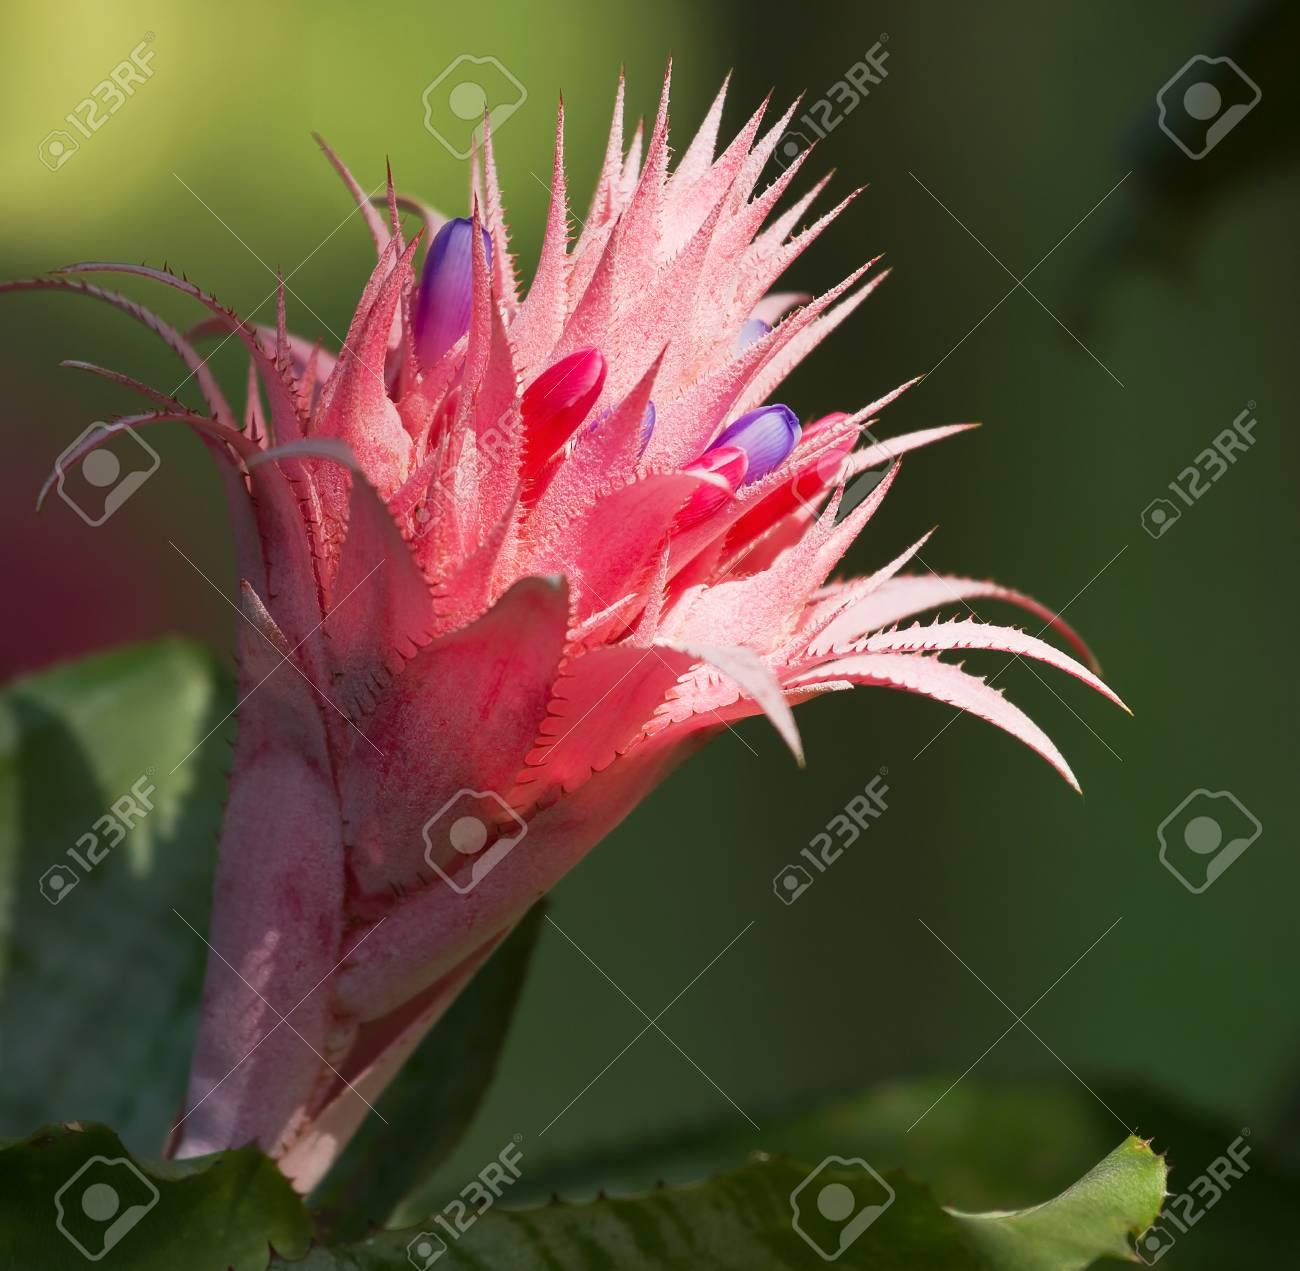 Macro of pink bromeliad flower in bloom in springtime aechmea macro of pink bromeliad flower in bloom in springtime aechmea fasciata bromeliaceae stock photo mightylinksfo